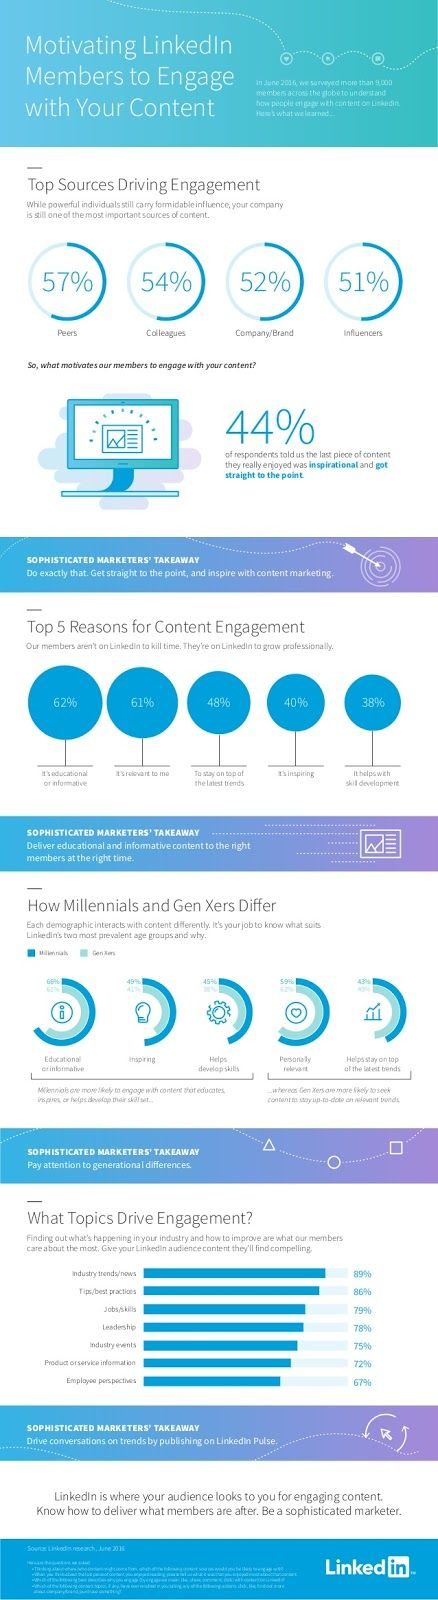 What Types of Content Generate the Best Response on LinkedIn? [Infographic]